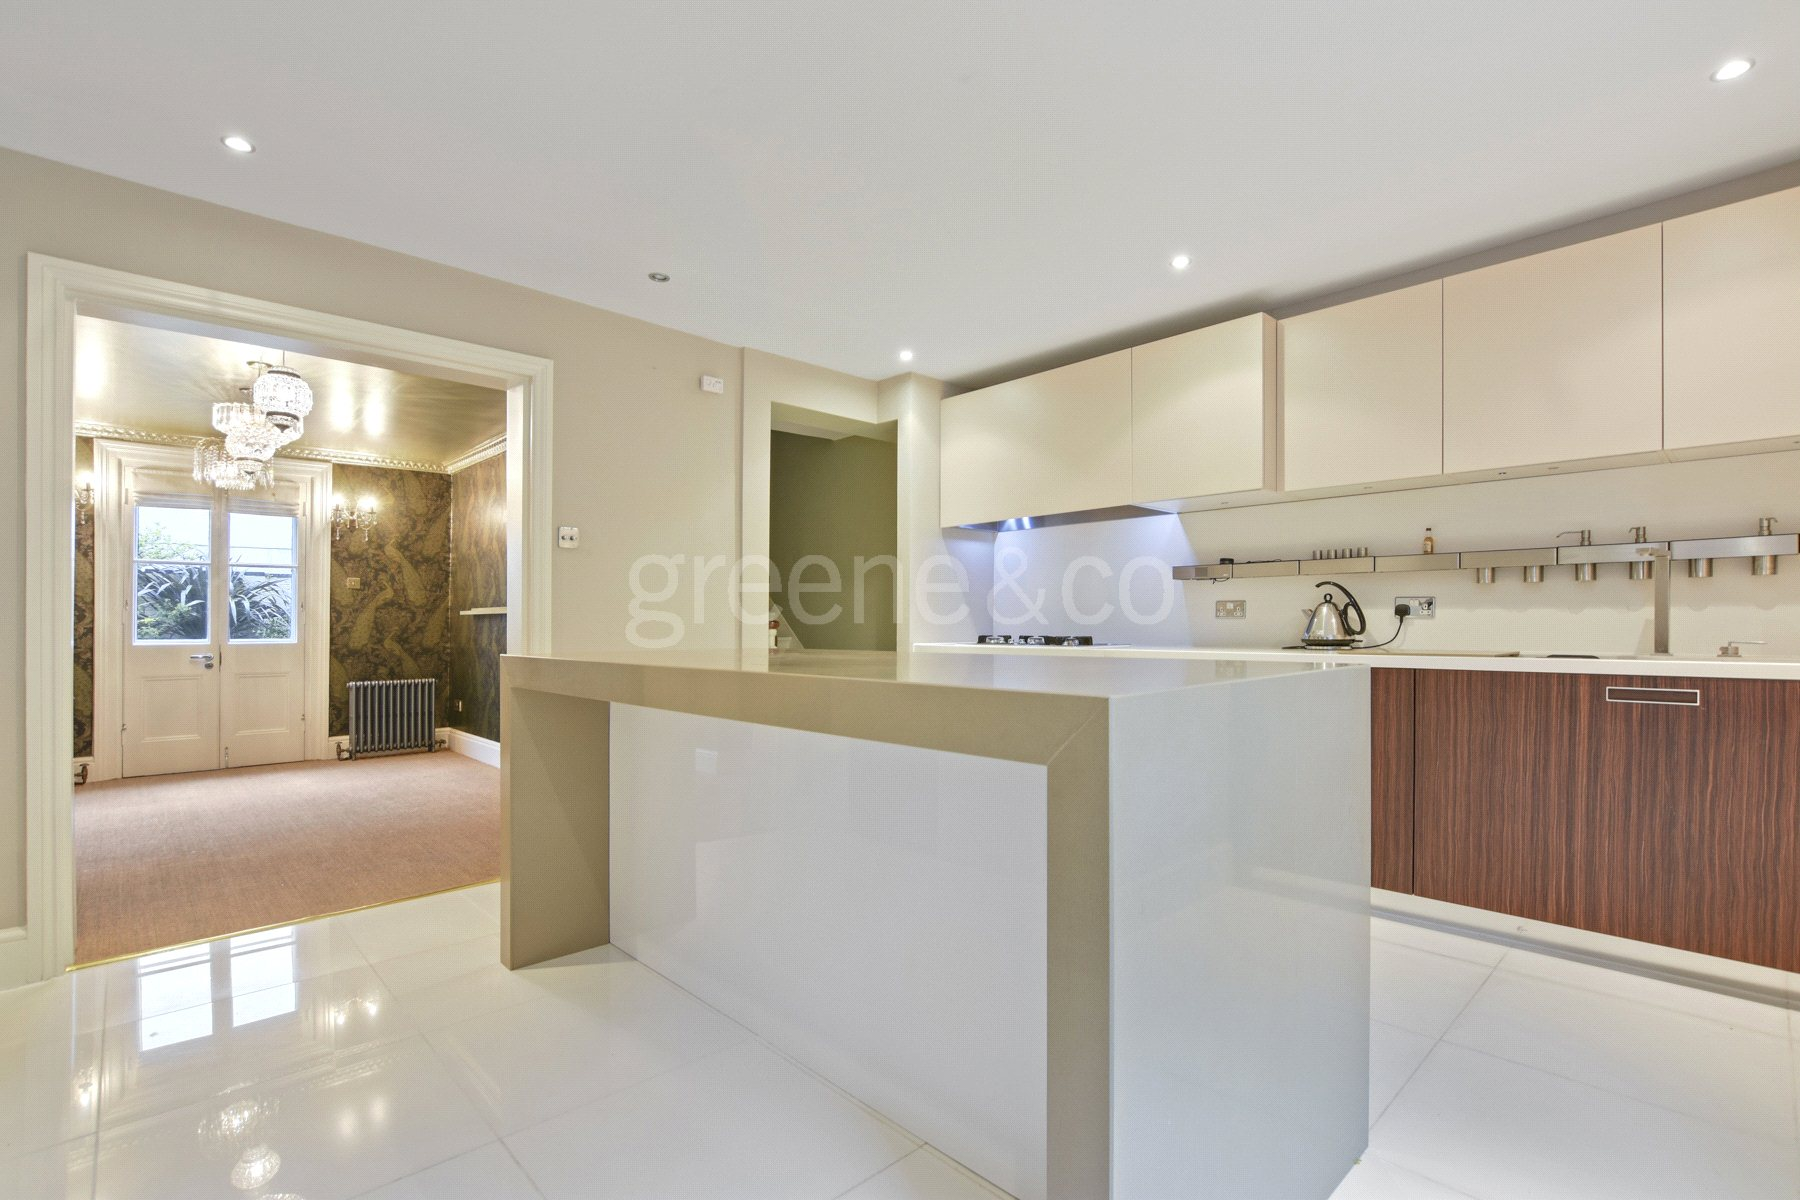 3 Bedrooms House for sale in Wildwood Terrace, Hampstead, London, NW3